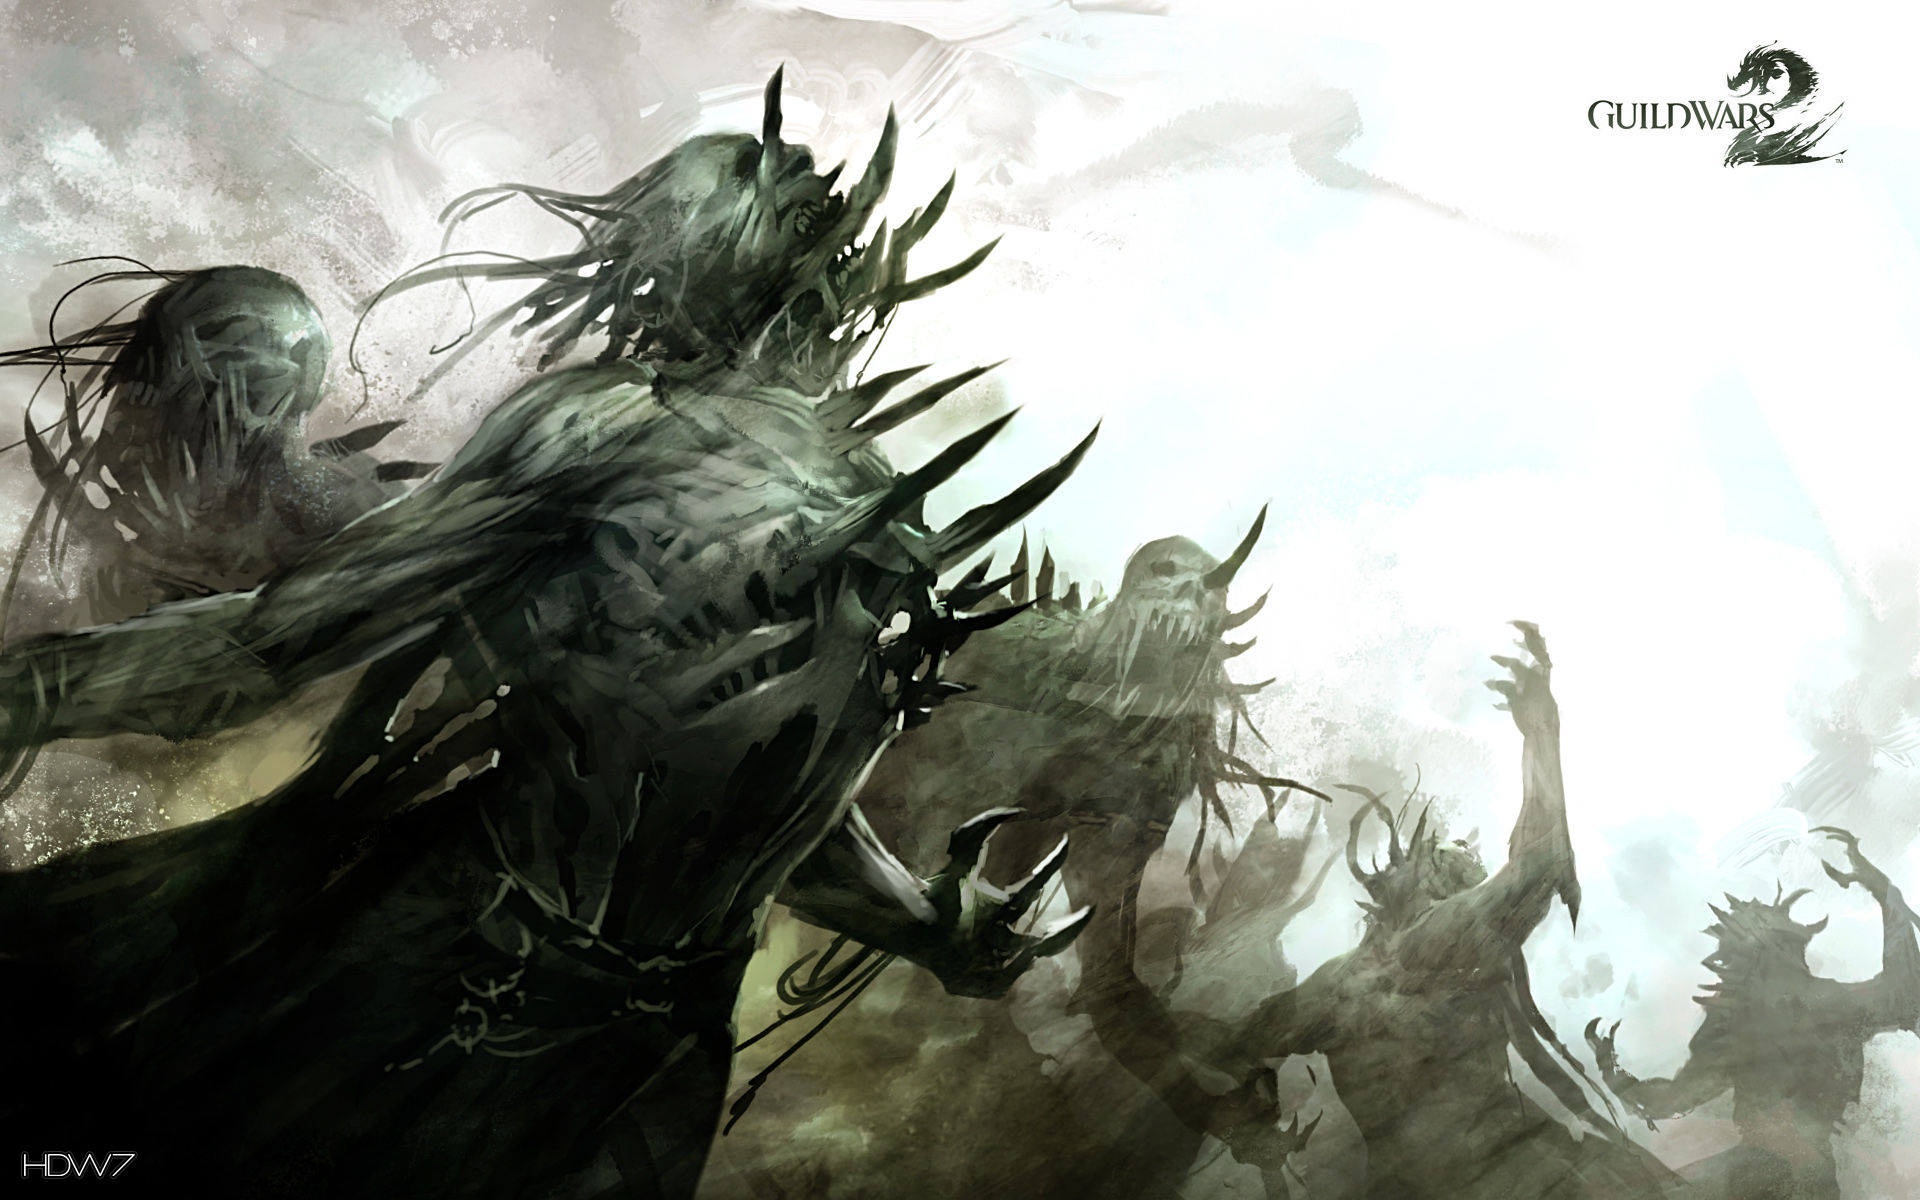 Guild Wars 2 Undead Minions Widescreen Wallpaper Hd Wallpaper Gallery 297